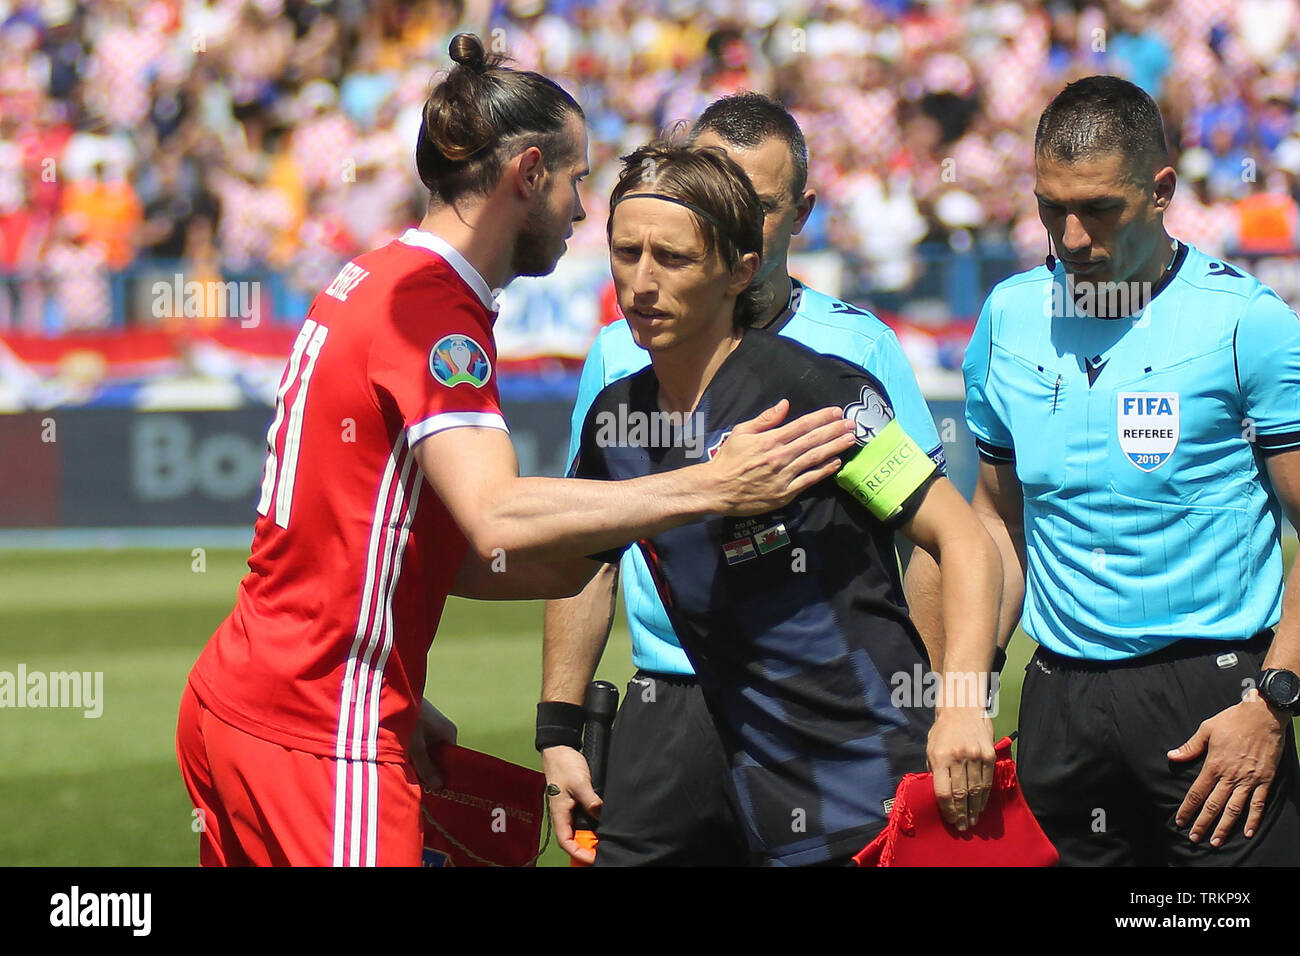 4ccf0d61e741 Osijek, Croatia. 08th June, 2019. Gareth Bale of Wales with Croatia captain